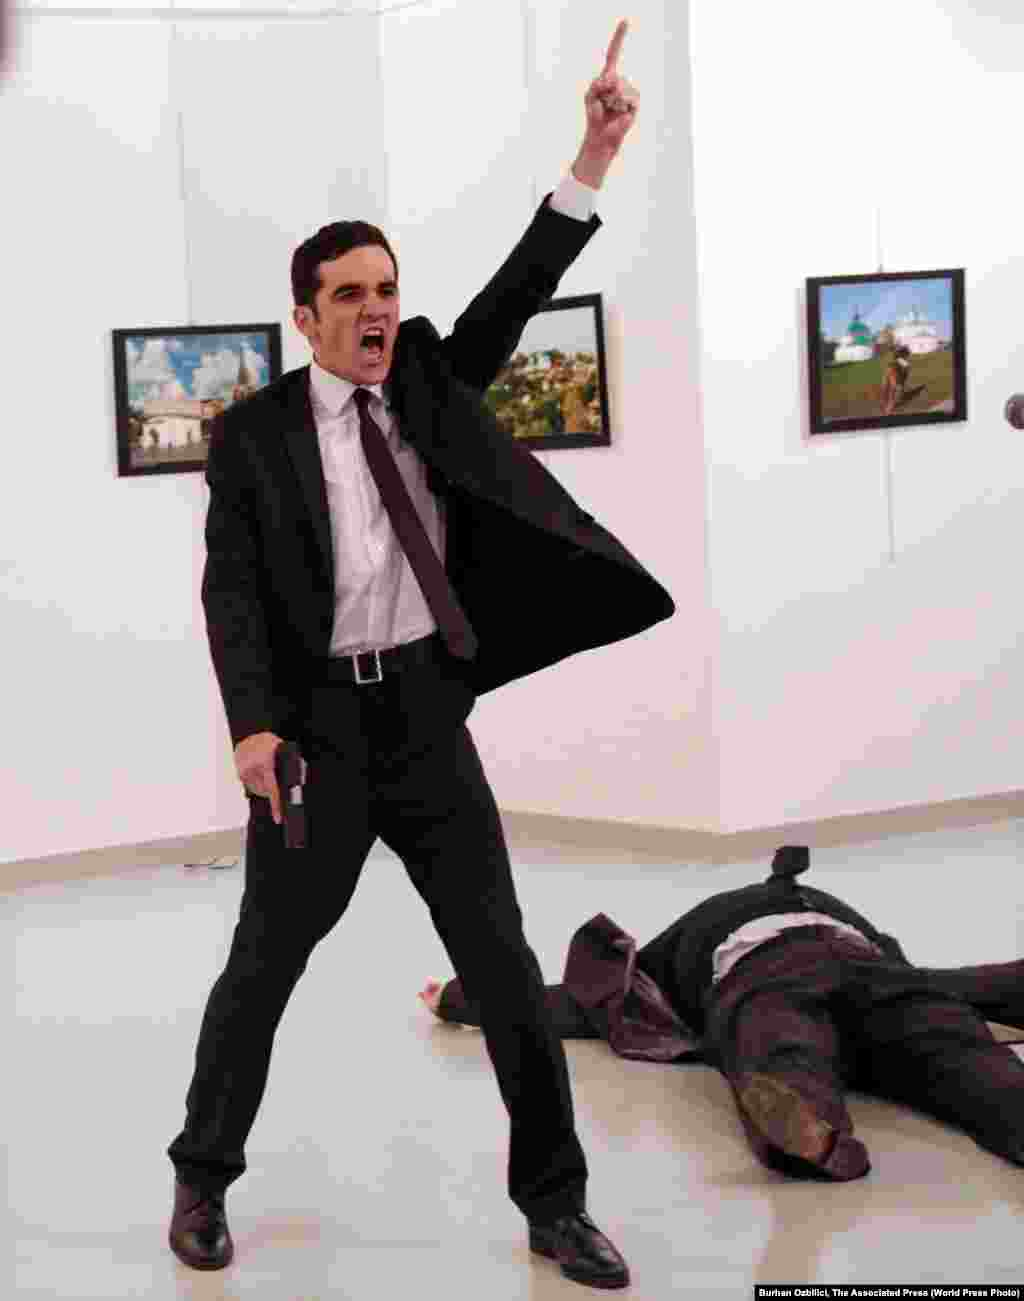 "Mevlut Mert Altintas shouts after shooting Andrei Karlov, the Russian ambassador to Turkey, at an art gallery in Ankara, Turkey, December 19, 2016. The winning World Press Photo Of The Year, from Burhan Ozbilici of Associated Press, was also part of a series, ""An Assassination in Turkey"", which won the Spot News - Stories category. Ozbilici captured the moments before and after Altintas, an off-duty policeman, drew a handgun and shot Karlov at a photo exhibition."